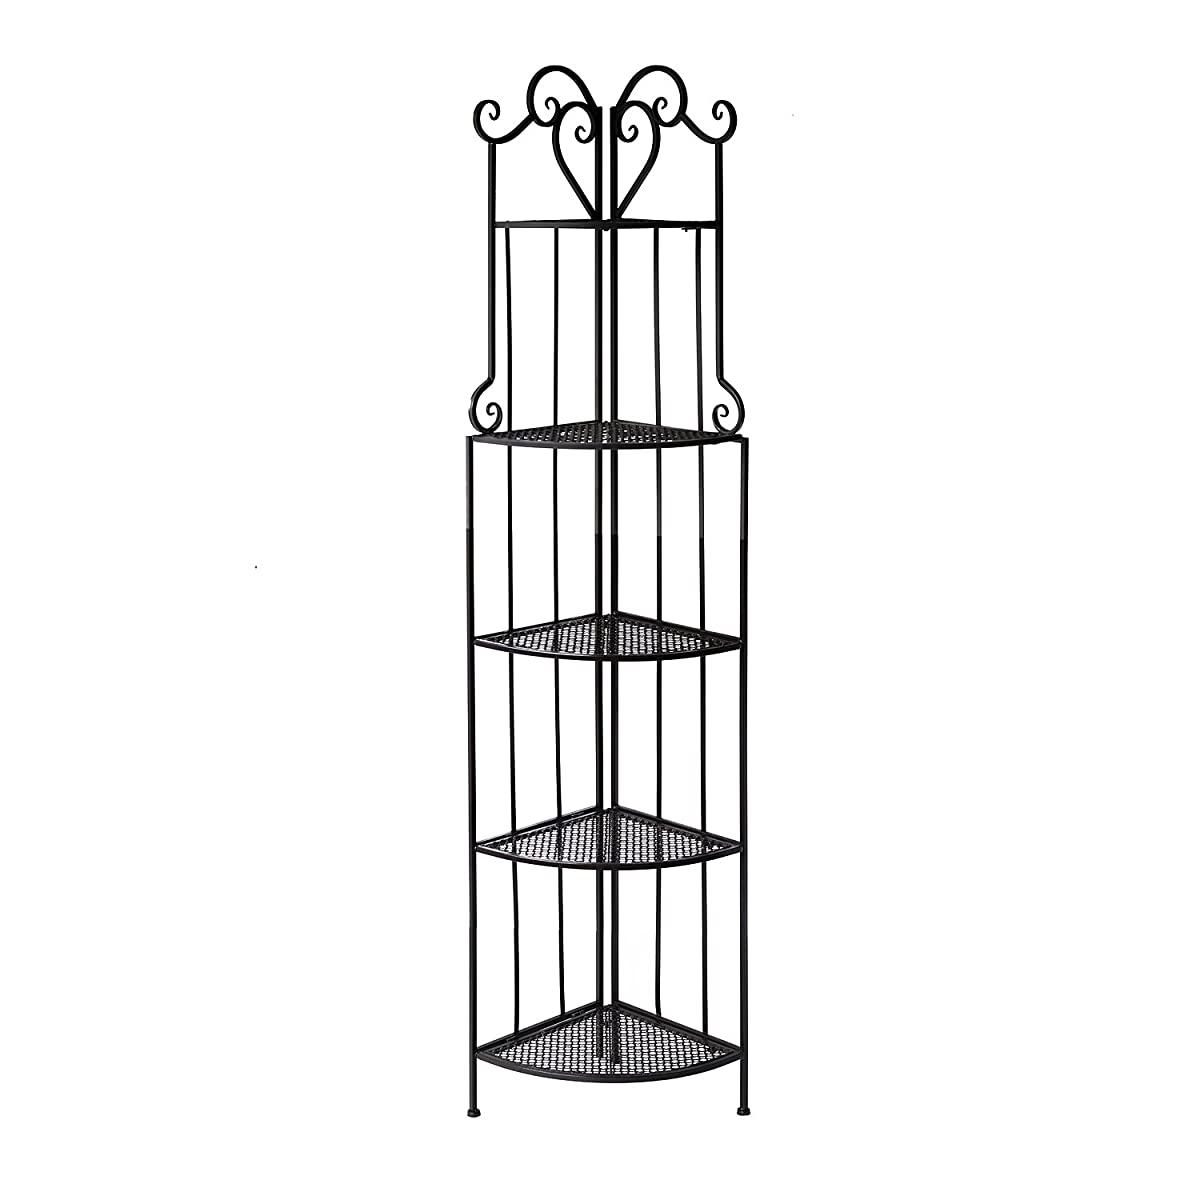 Outsunny 5 Tier Decorative Metal Corner Plant Shelf Stand